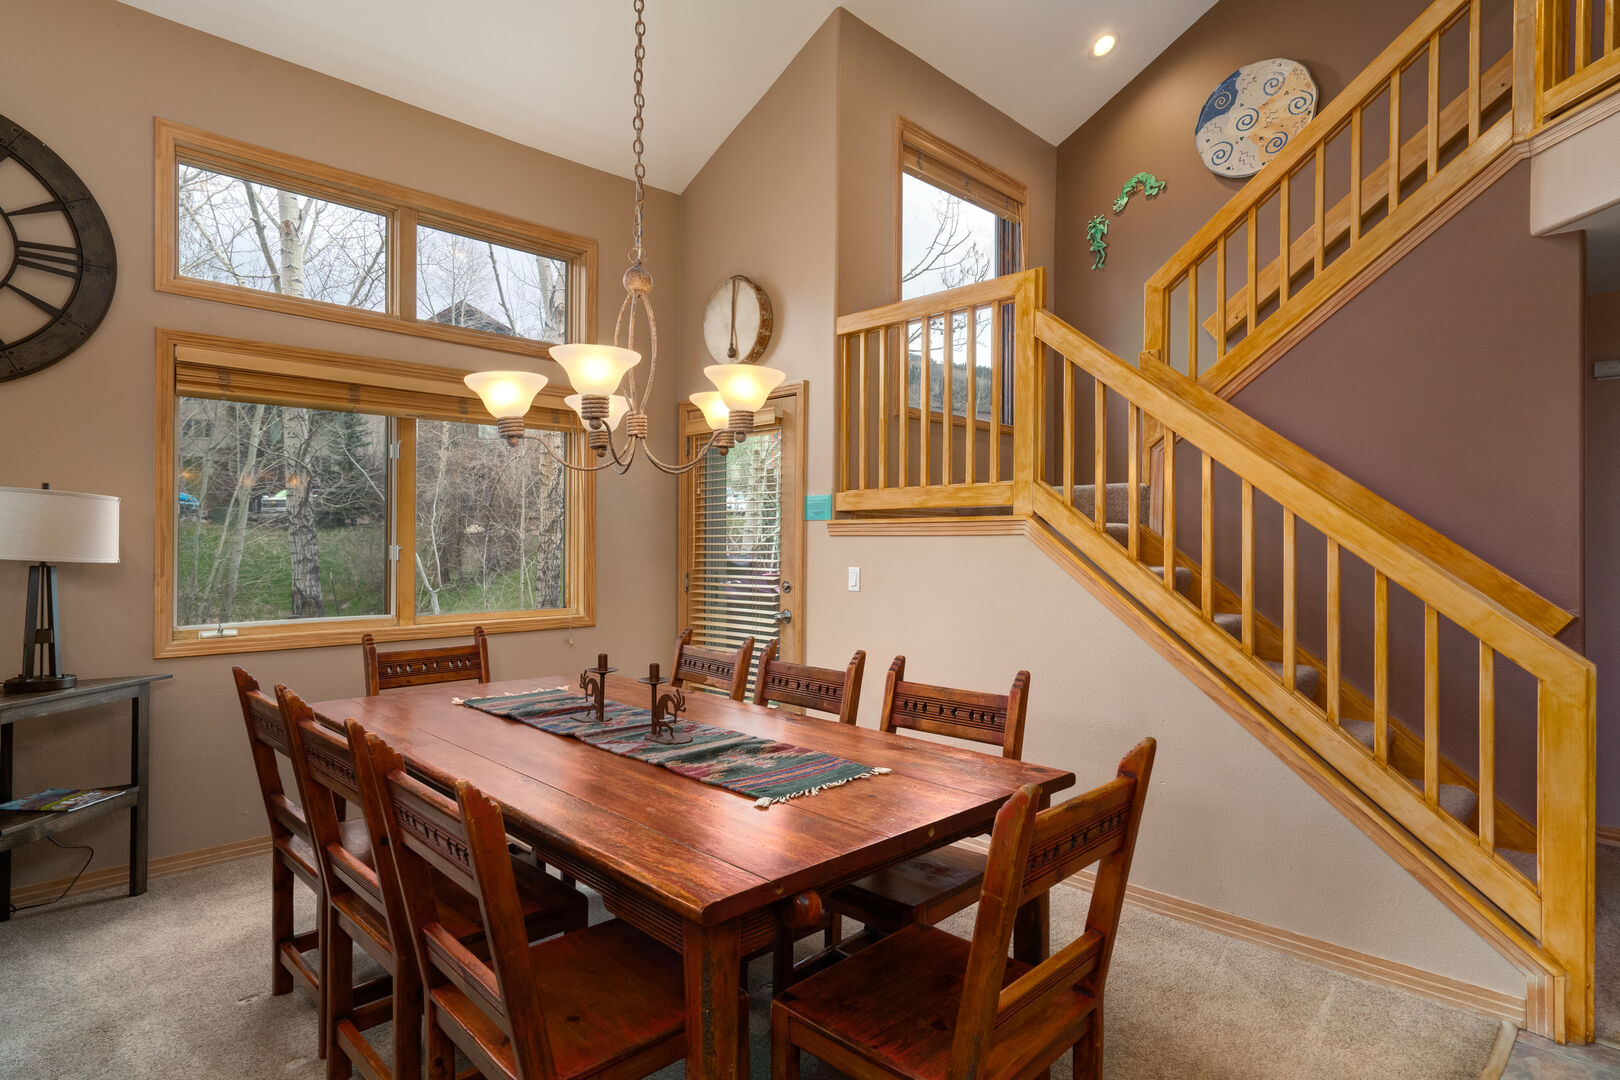 Door to the deck and hot tub behind the spacious dining table. Stairs to the upper level 2 bedrooms with loft overlooking the living space.